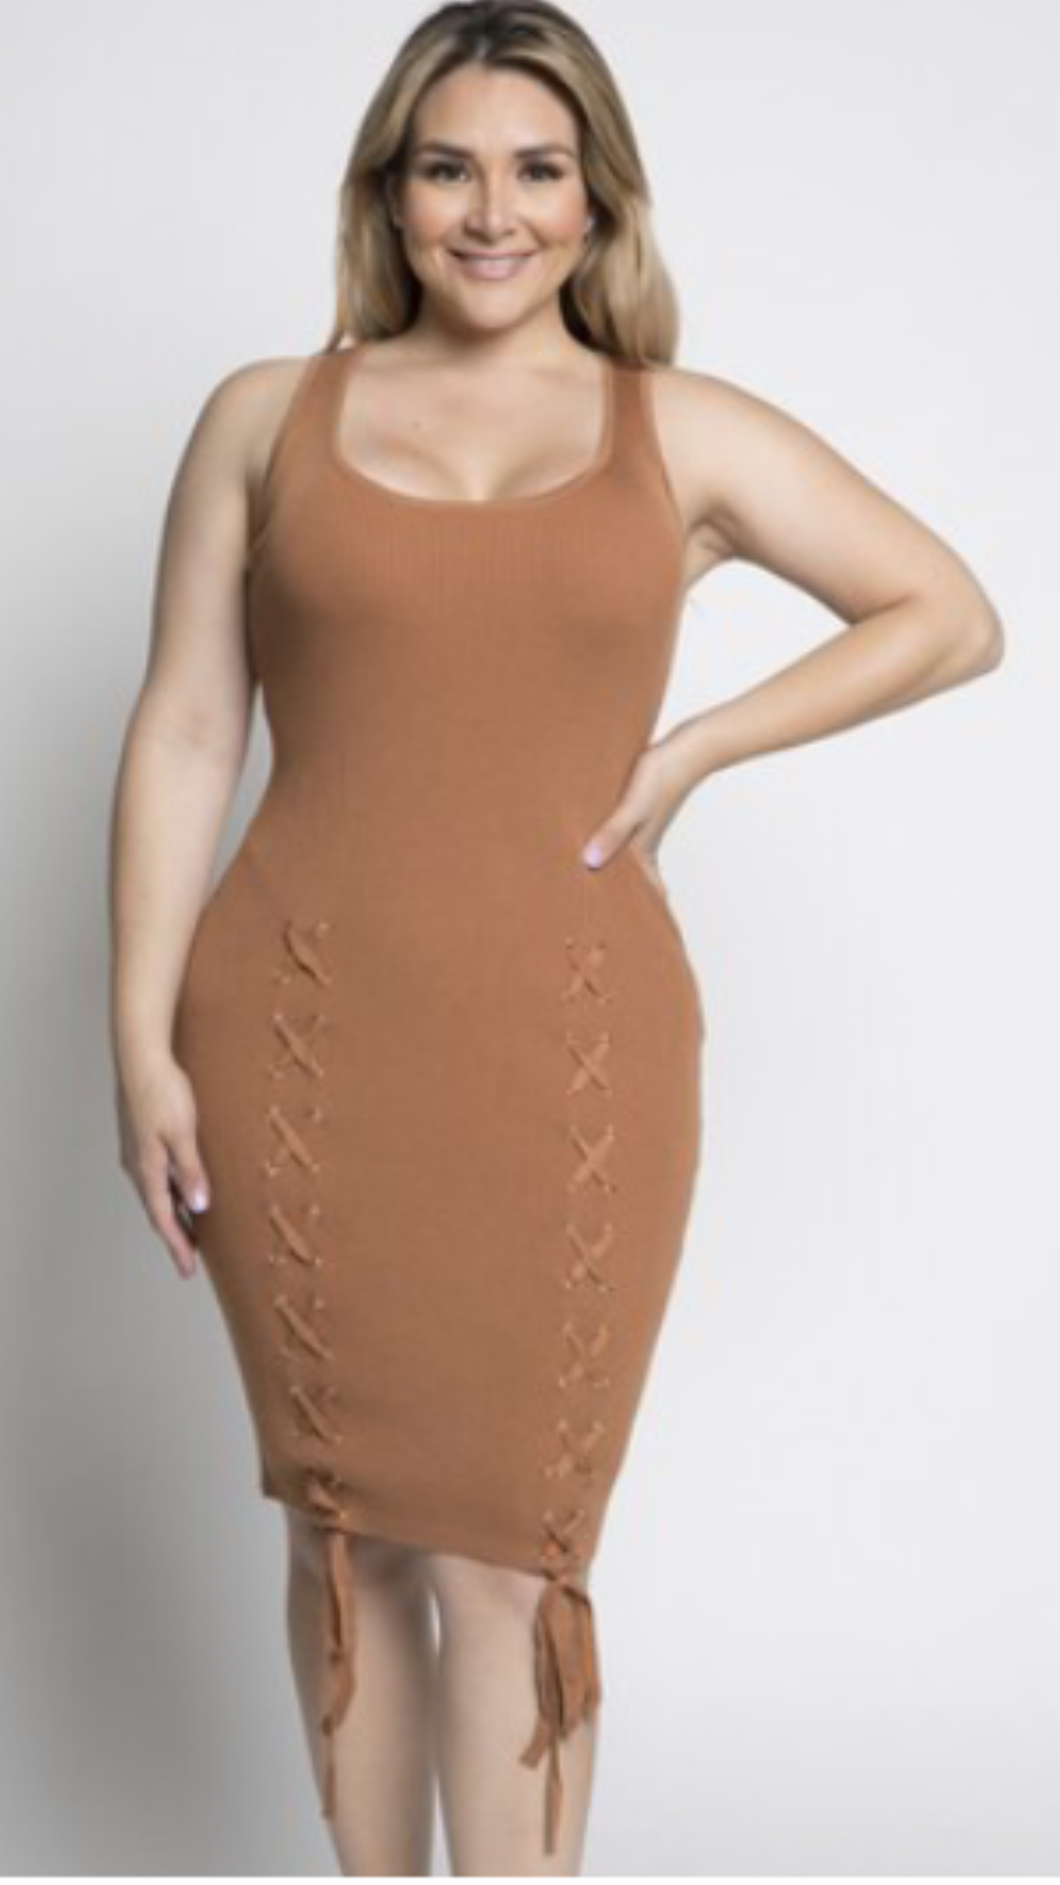 Women's Cream Sleeveless Sweater Dress | Laced Up | My Curvy Secrets